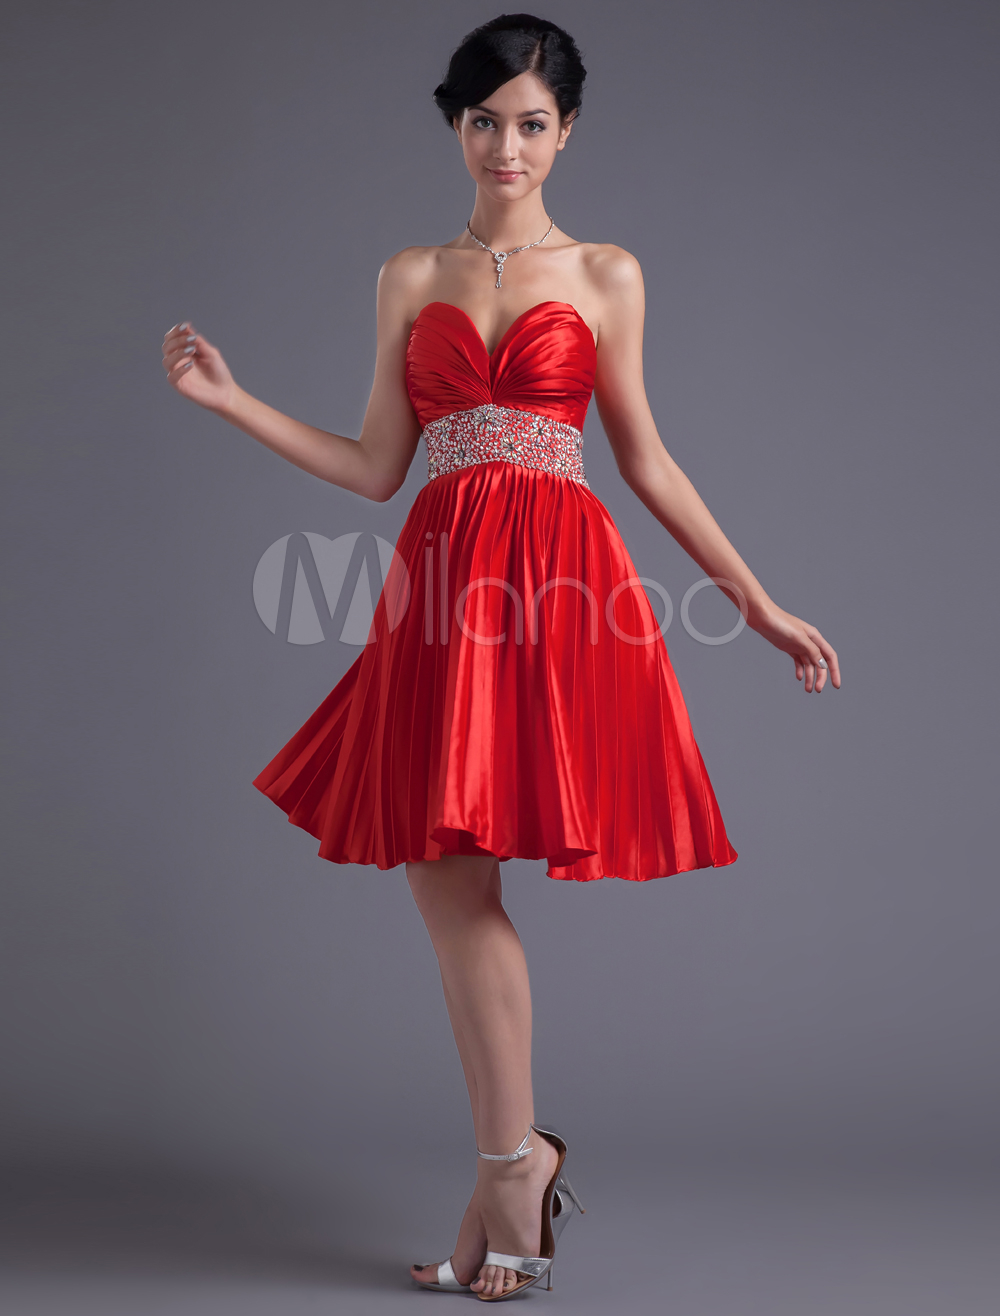 A-line Sweetheart Neck Rhinestone Red Knee-Length Homecoming Dress